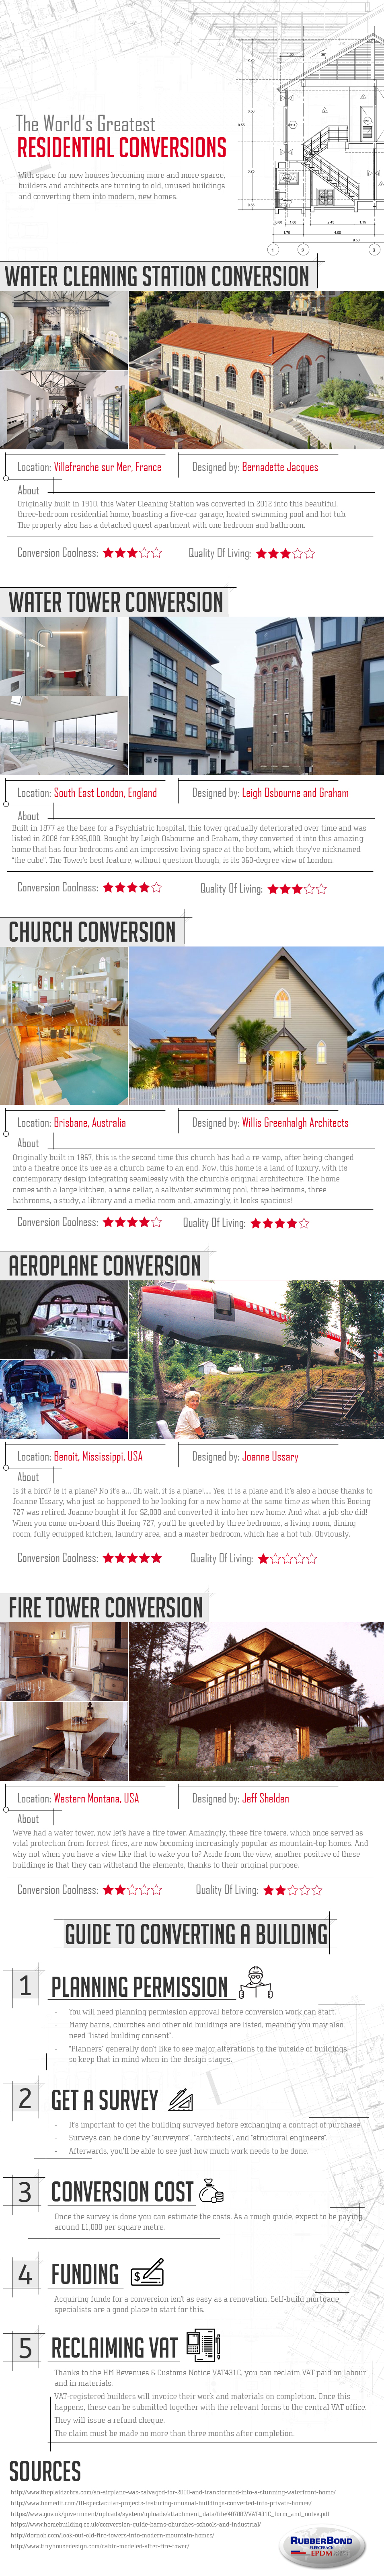 Top 5 Best Residential Conversions In The World - Infographic